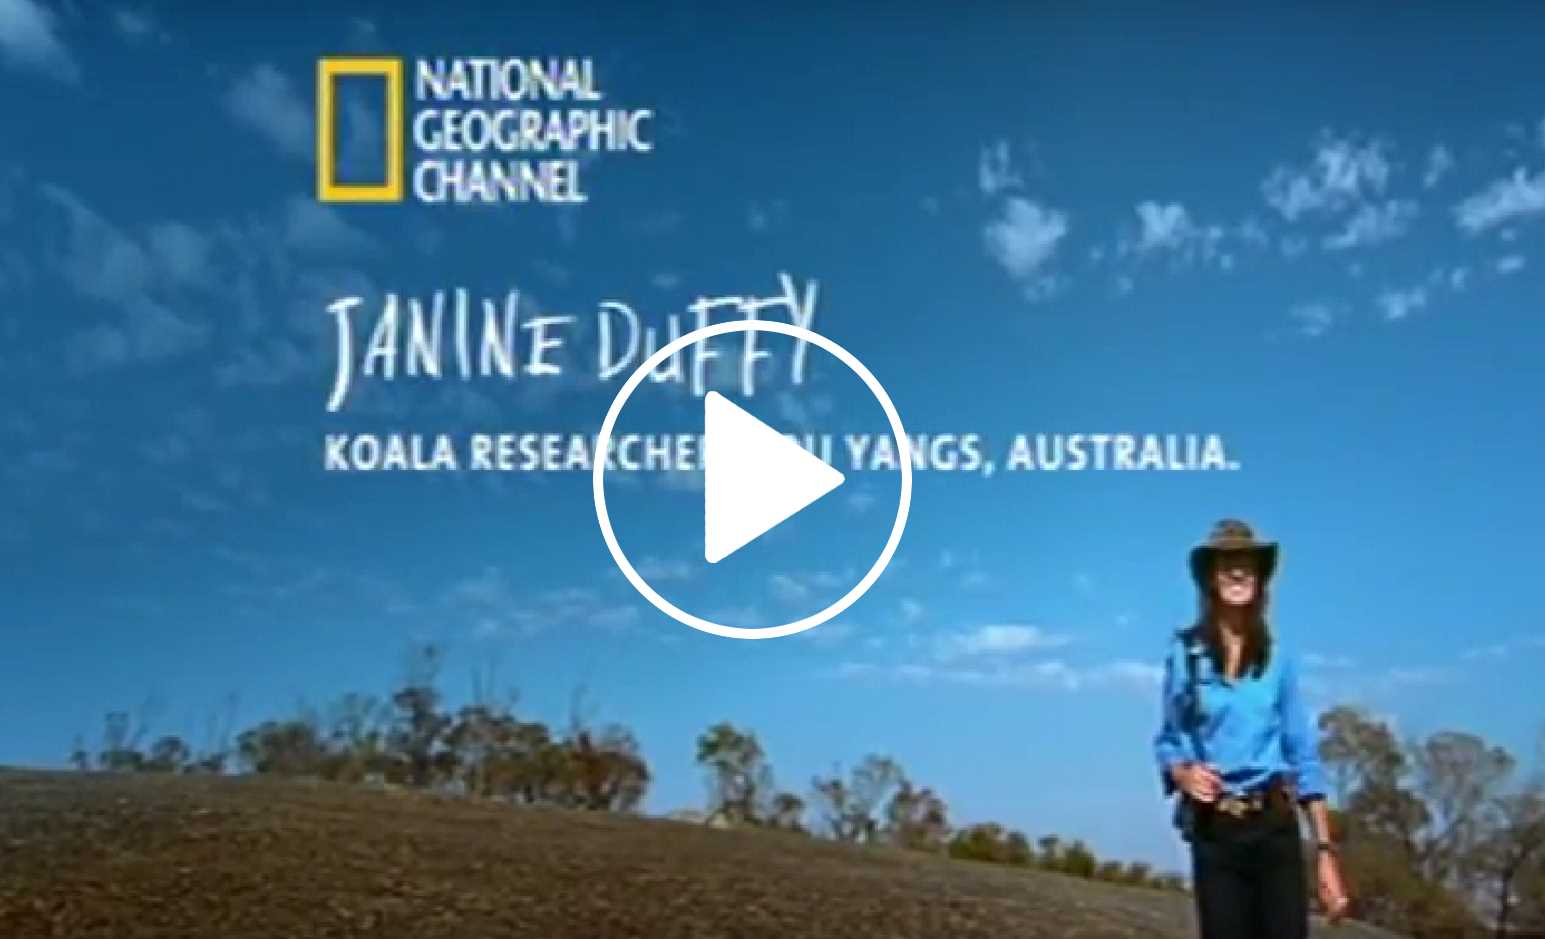 National Geographic video about Echidna Walkabout's Koala Research project